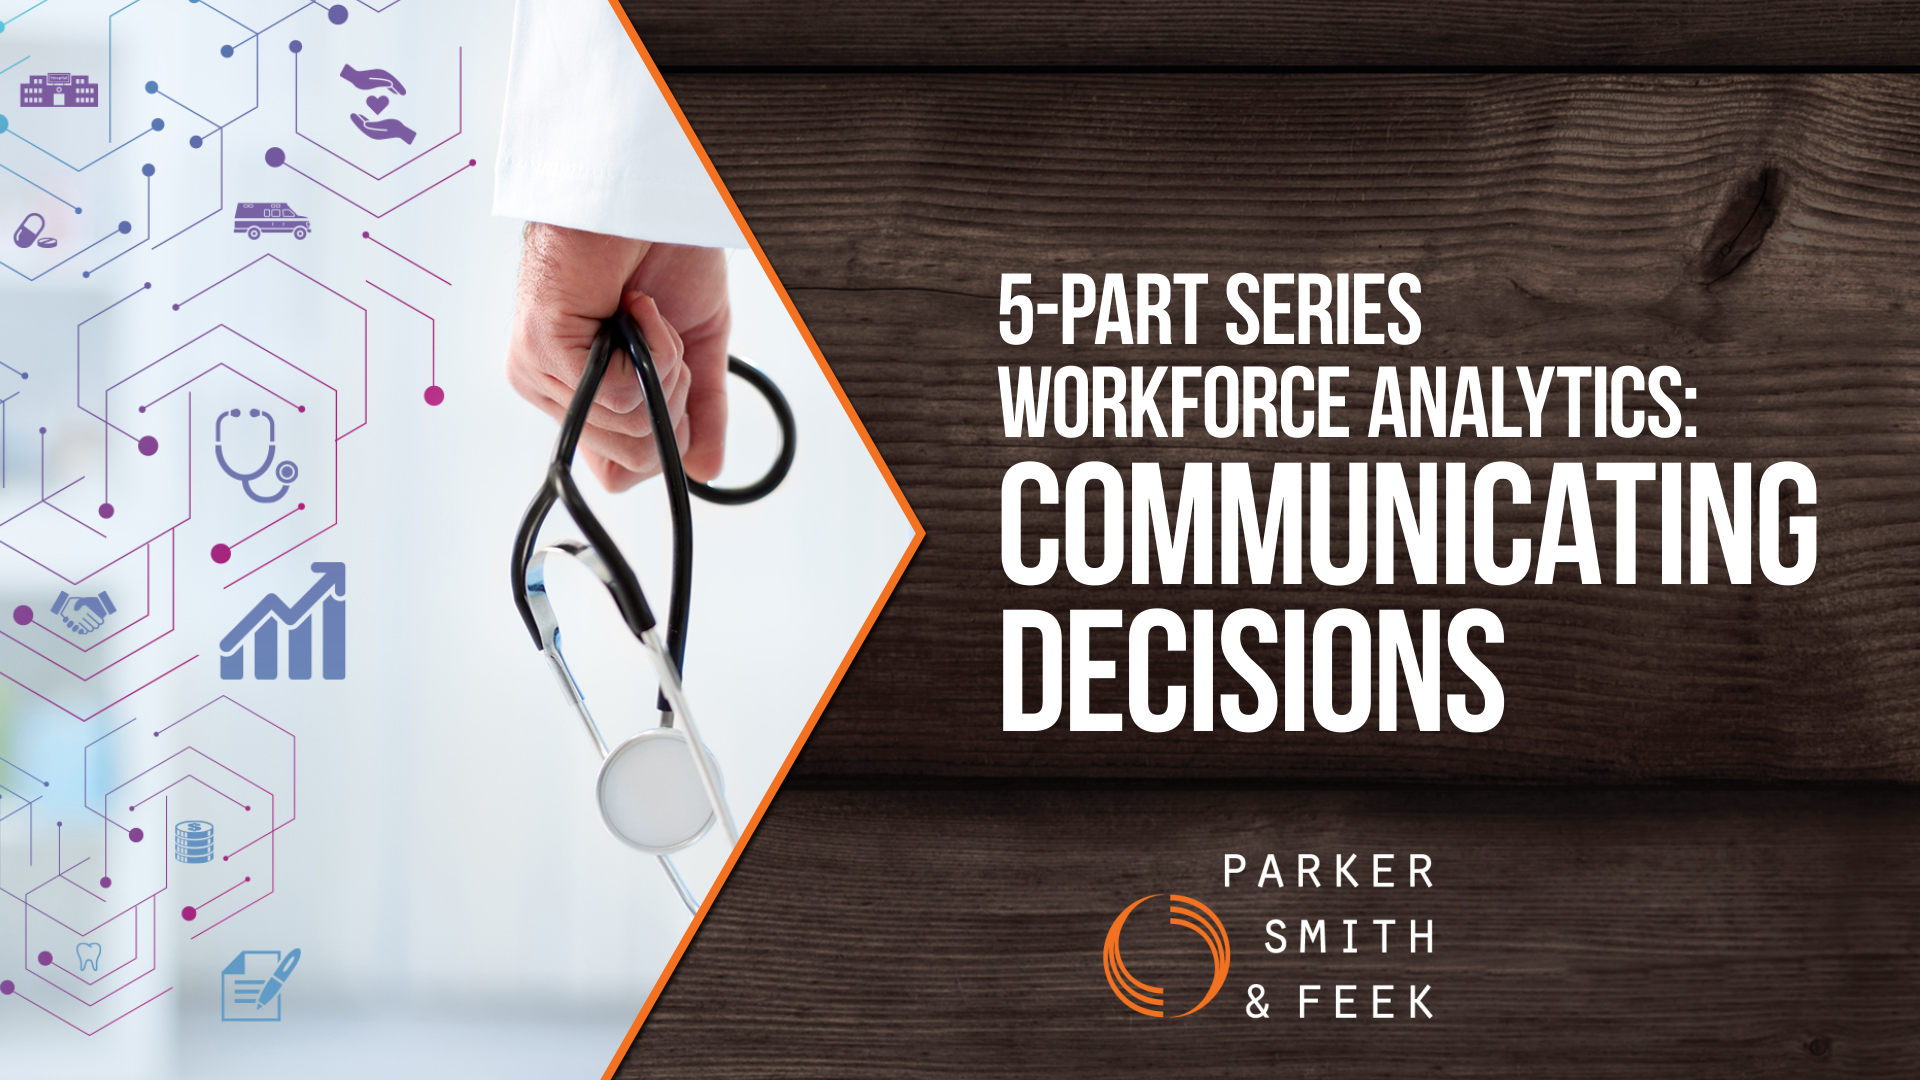 After using demographic data to make informed decisions on your organization's benefit programs, the next step is to communicate these to your employees in a meaningful way. Parker, Smith & Feek Account Executive @Disa Davis shares what you should consider when selecting the best communication method in part four of her five-part series on workforce analytics.